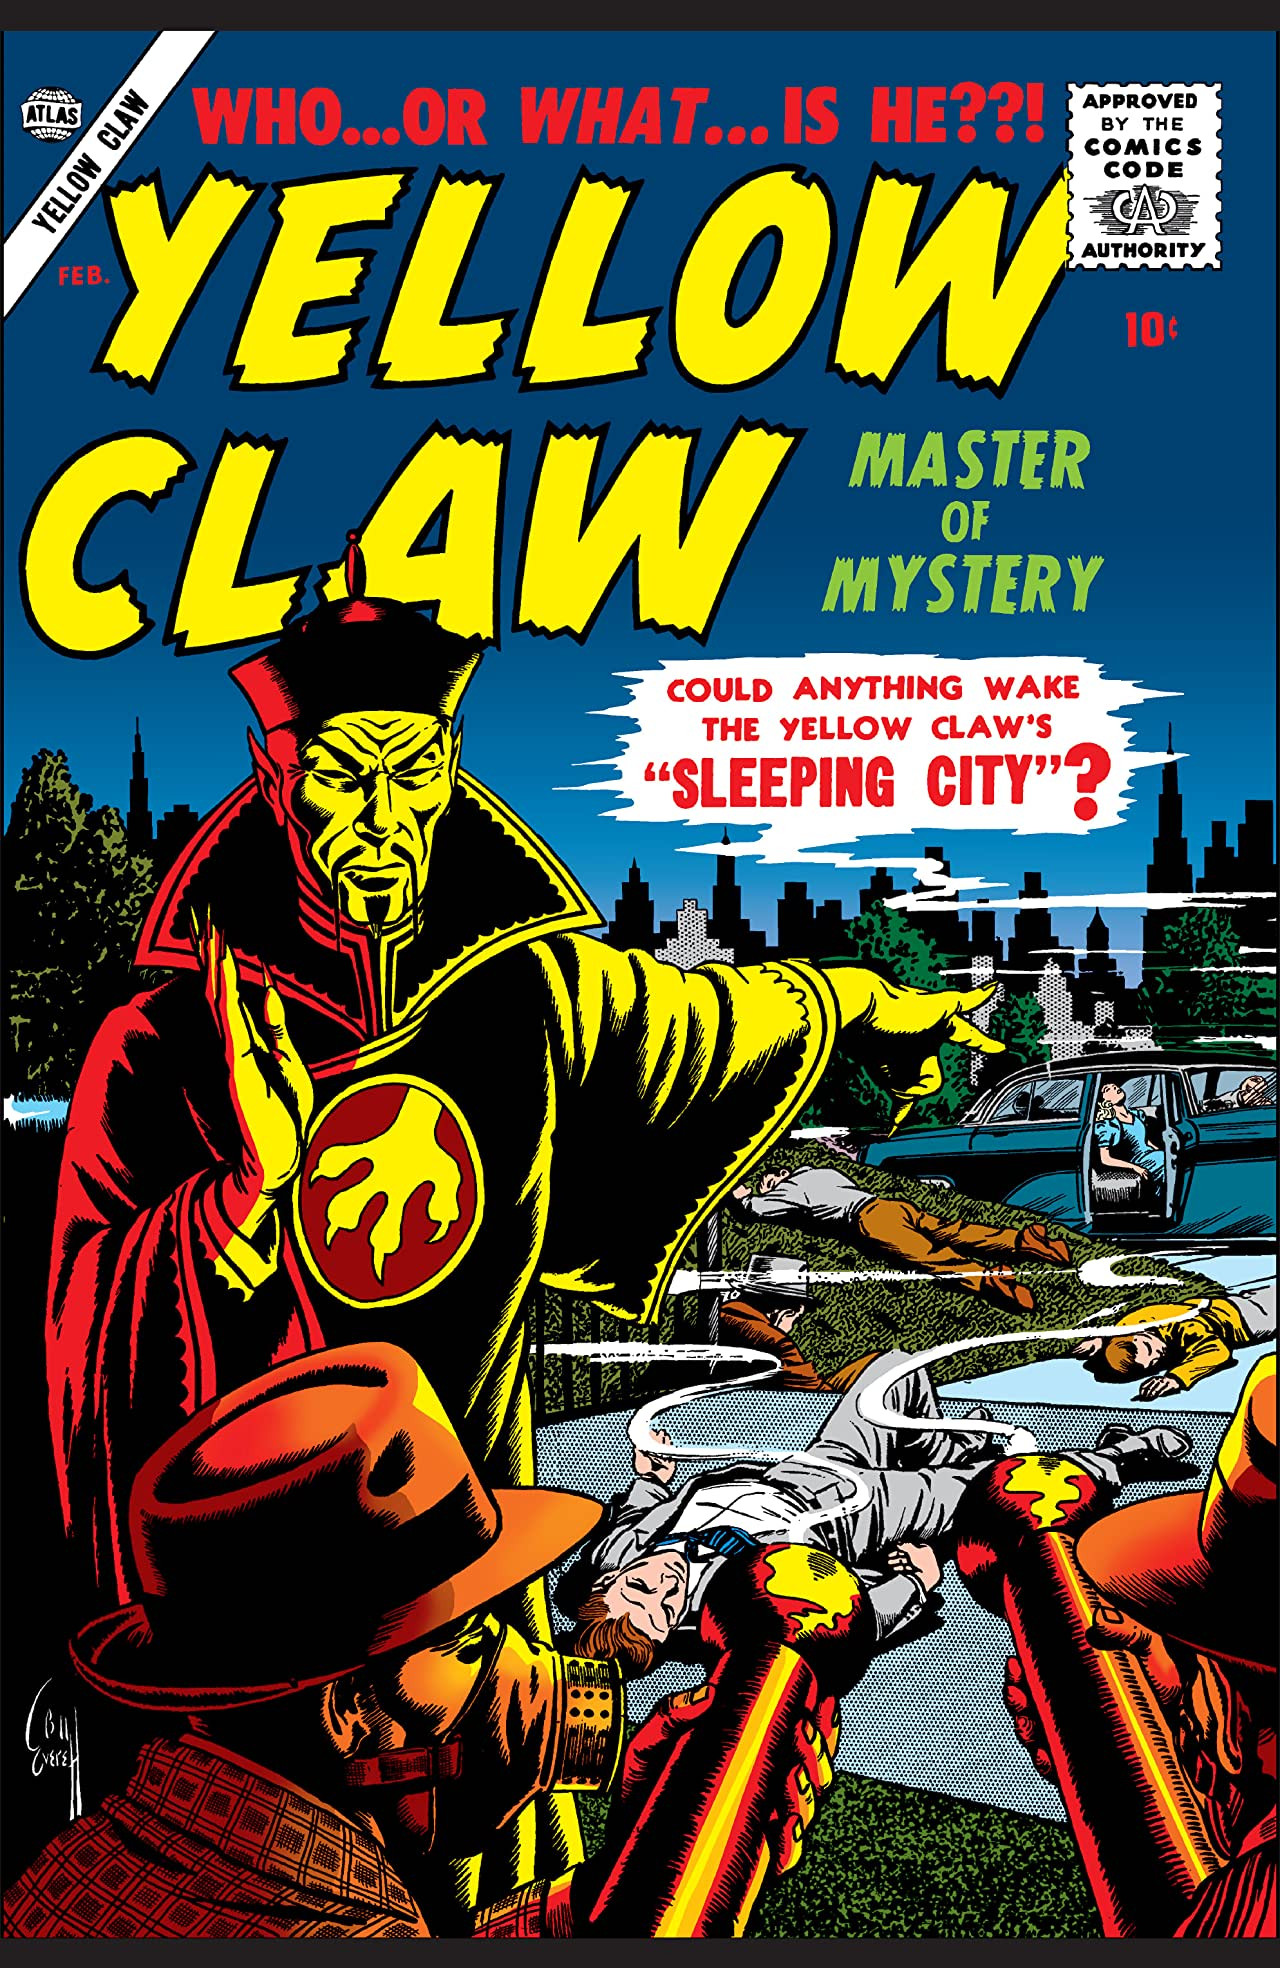 marvel comics yellow claw